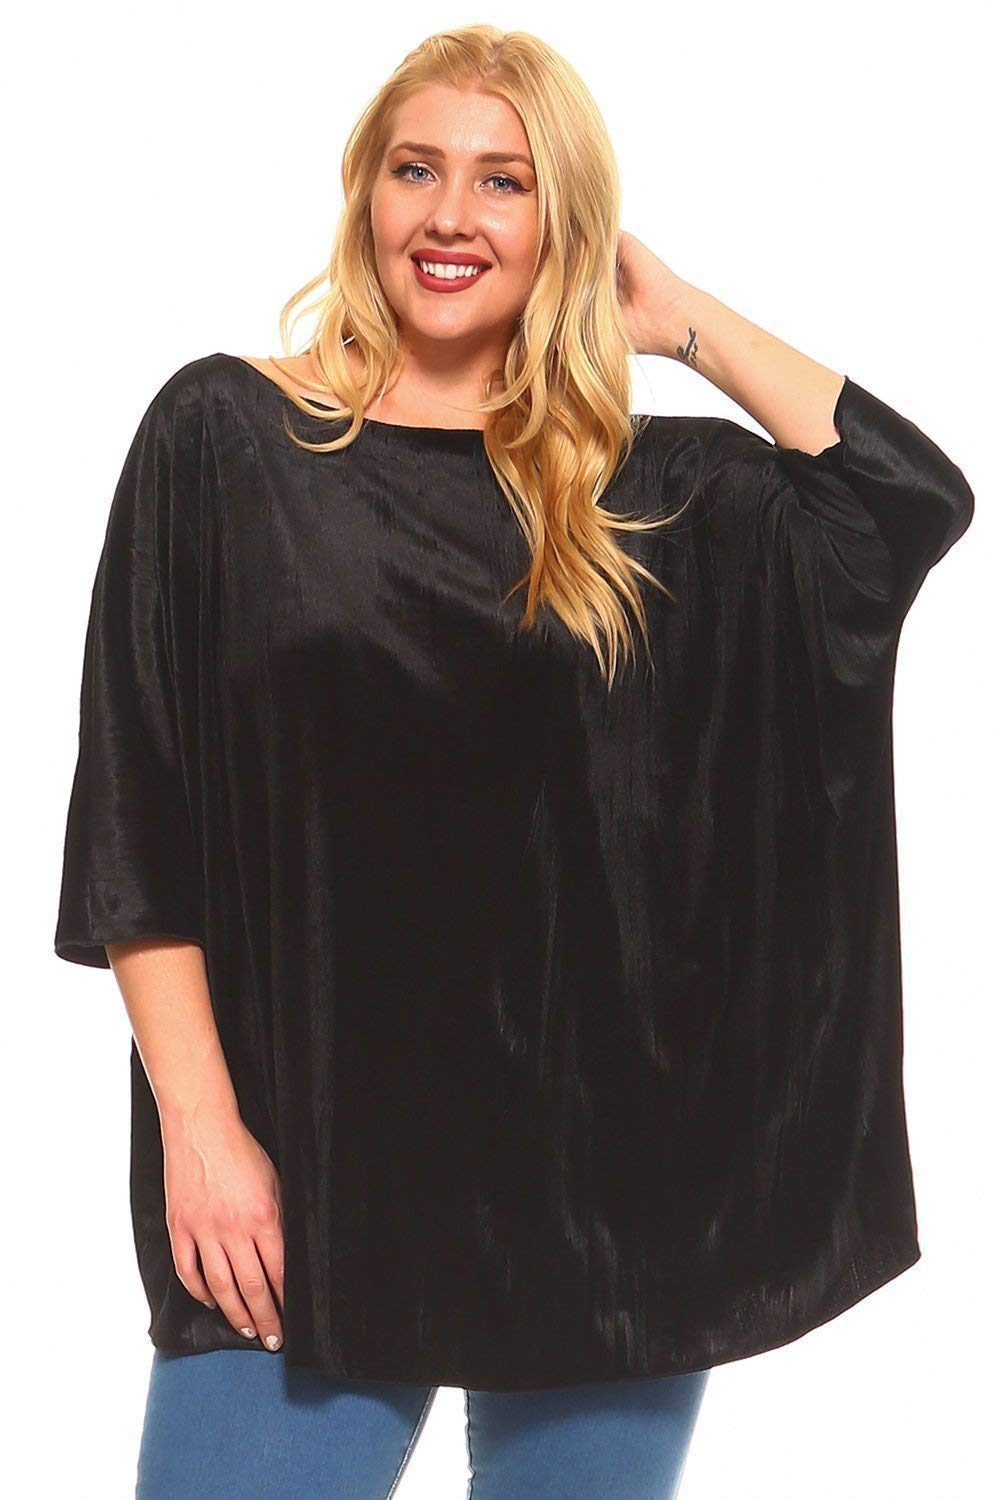 Simplicitie Womens Plus Size Boho Velvet Tunic Top Made in USA